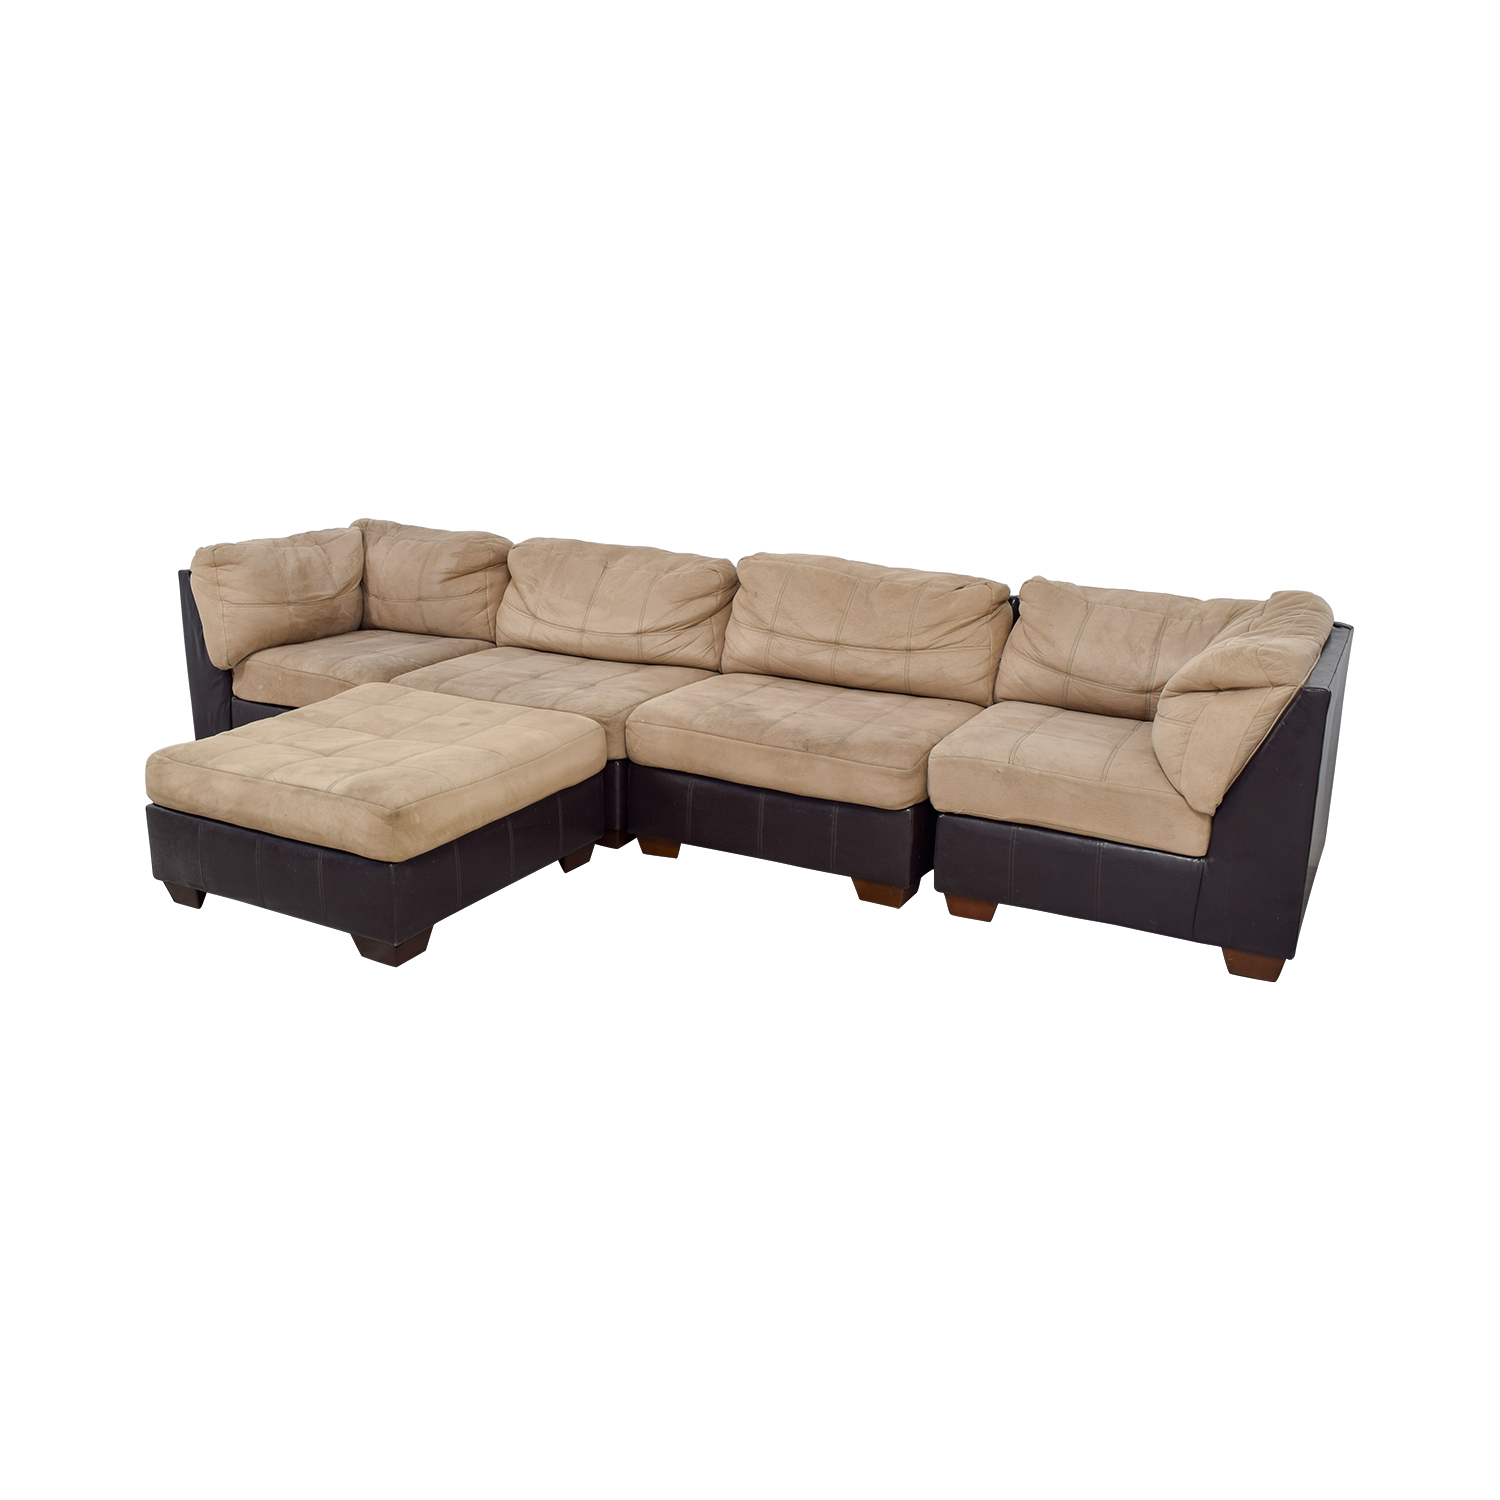 buy Ashley Furniture Ashley Furniture Brown Leather and Beige Sectional online